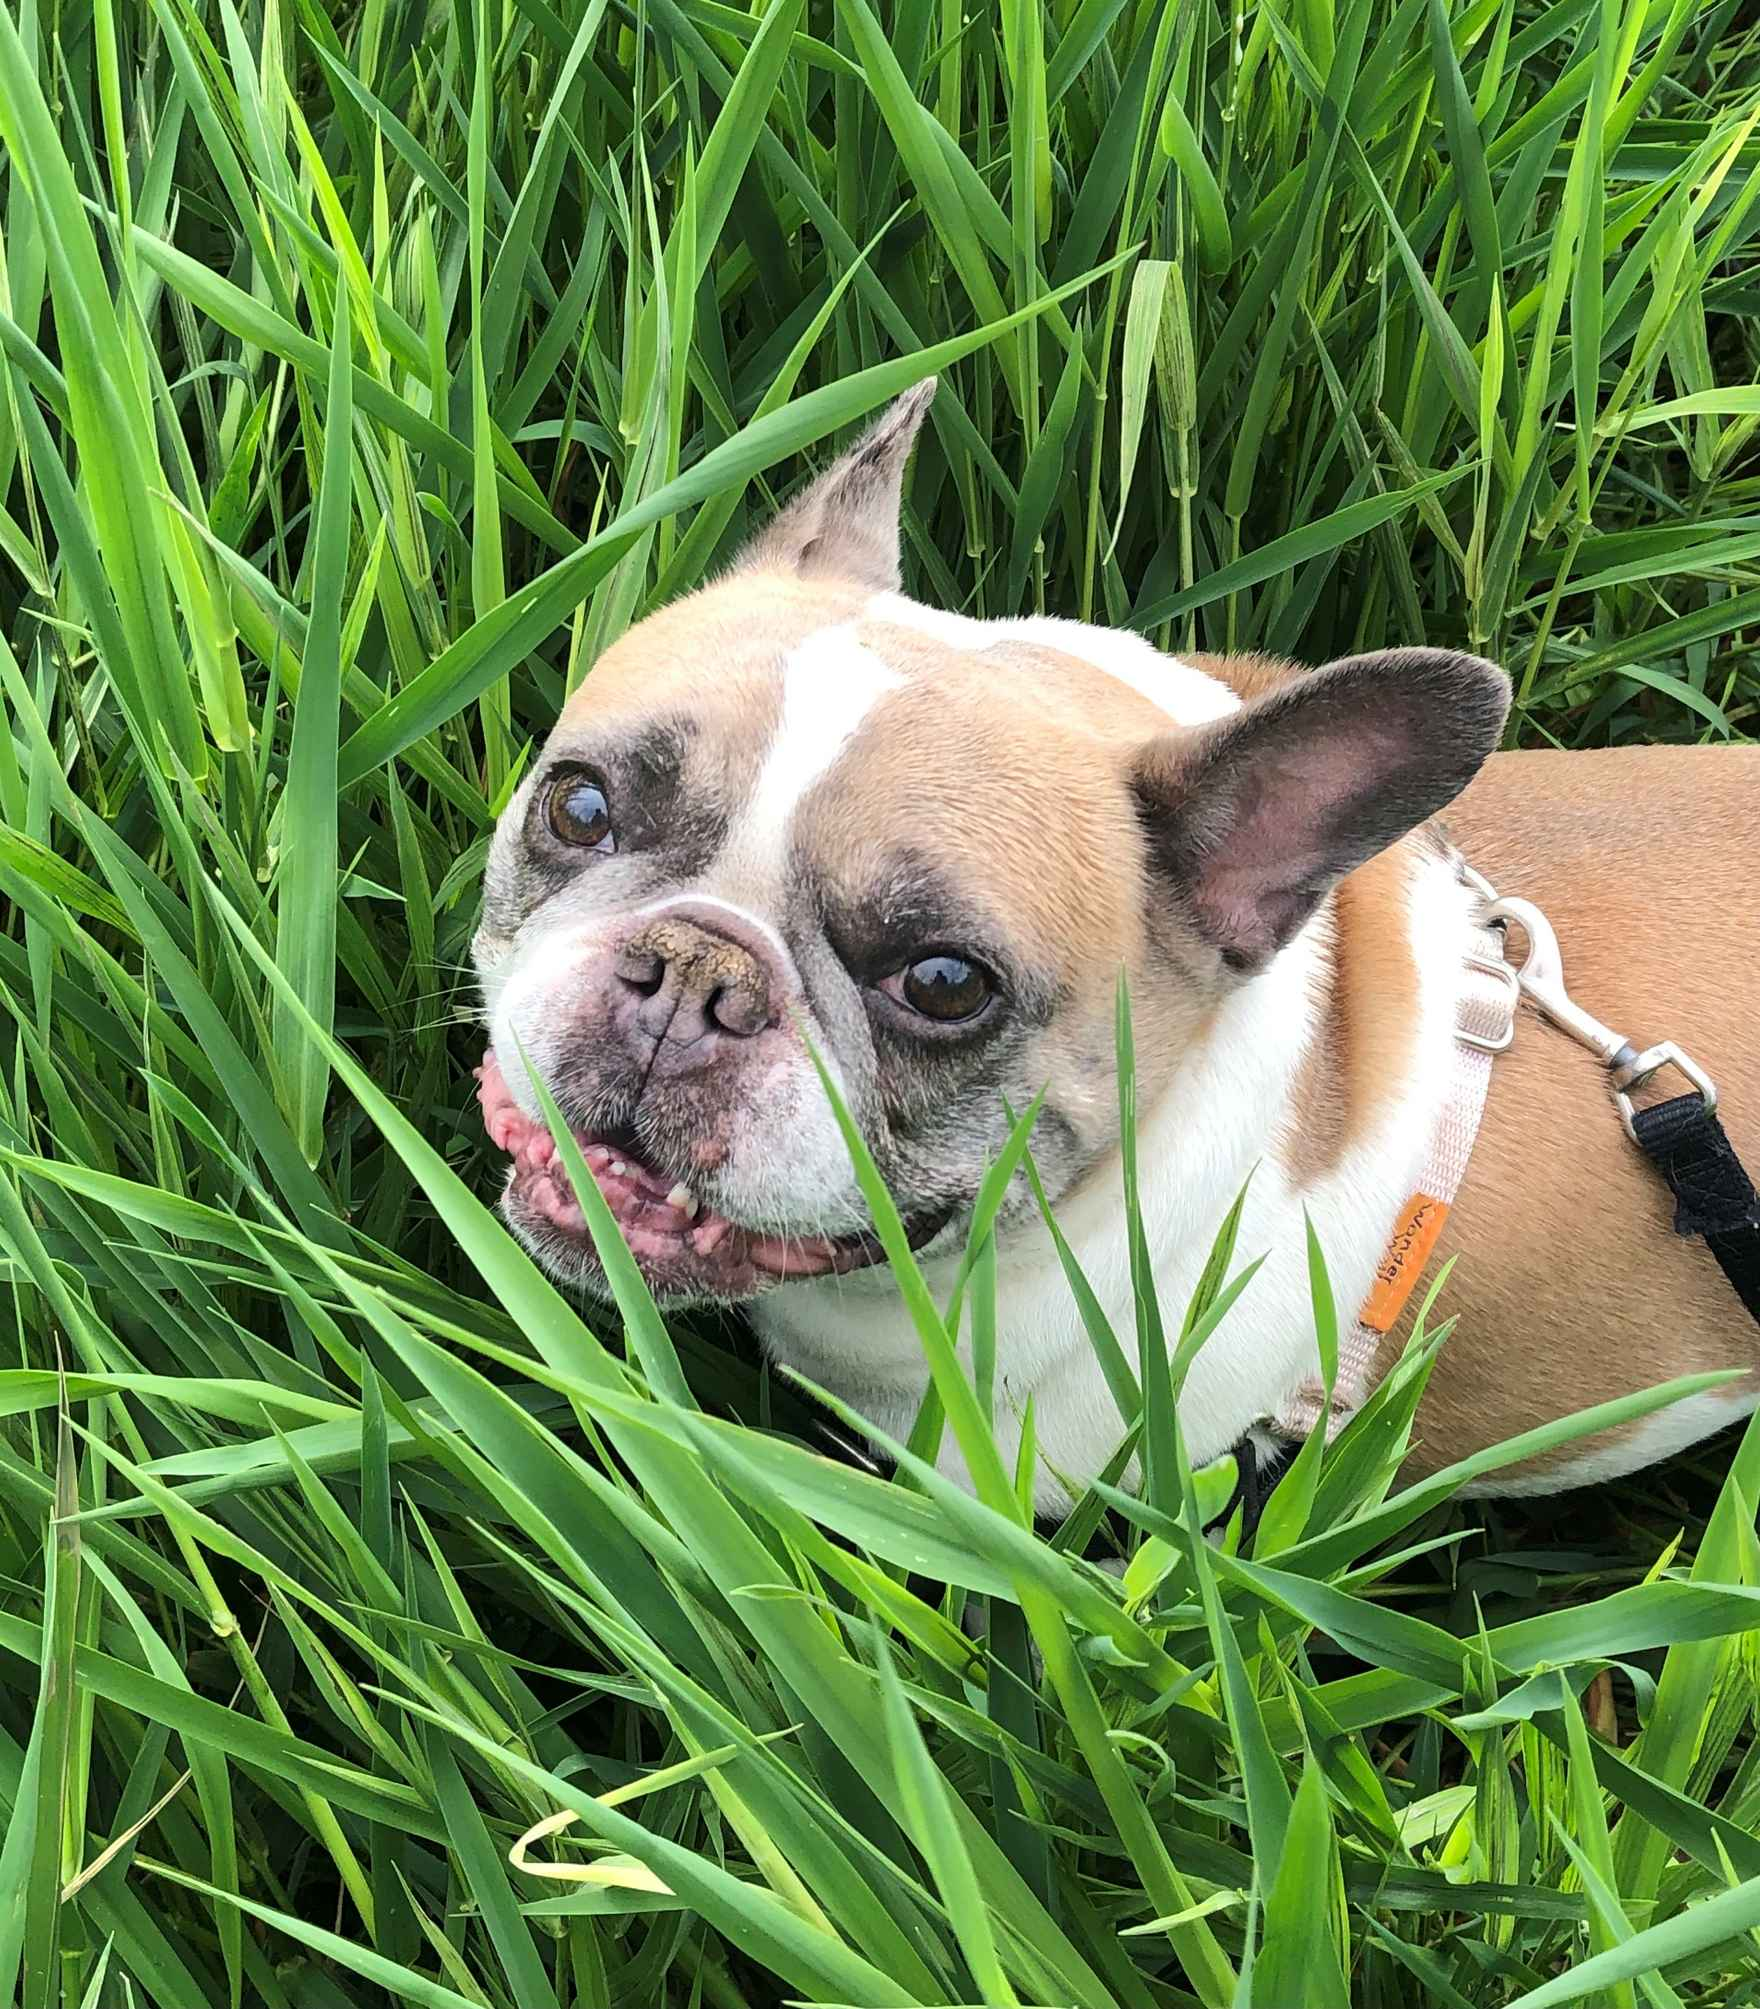 joule at park in grass